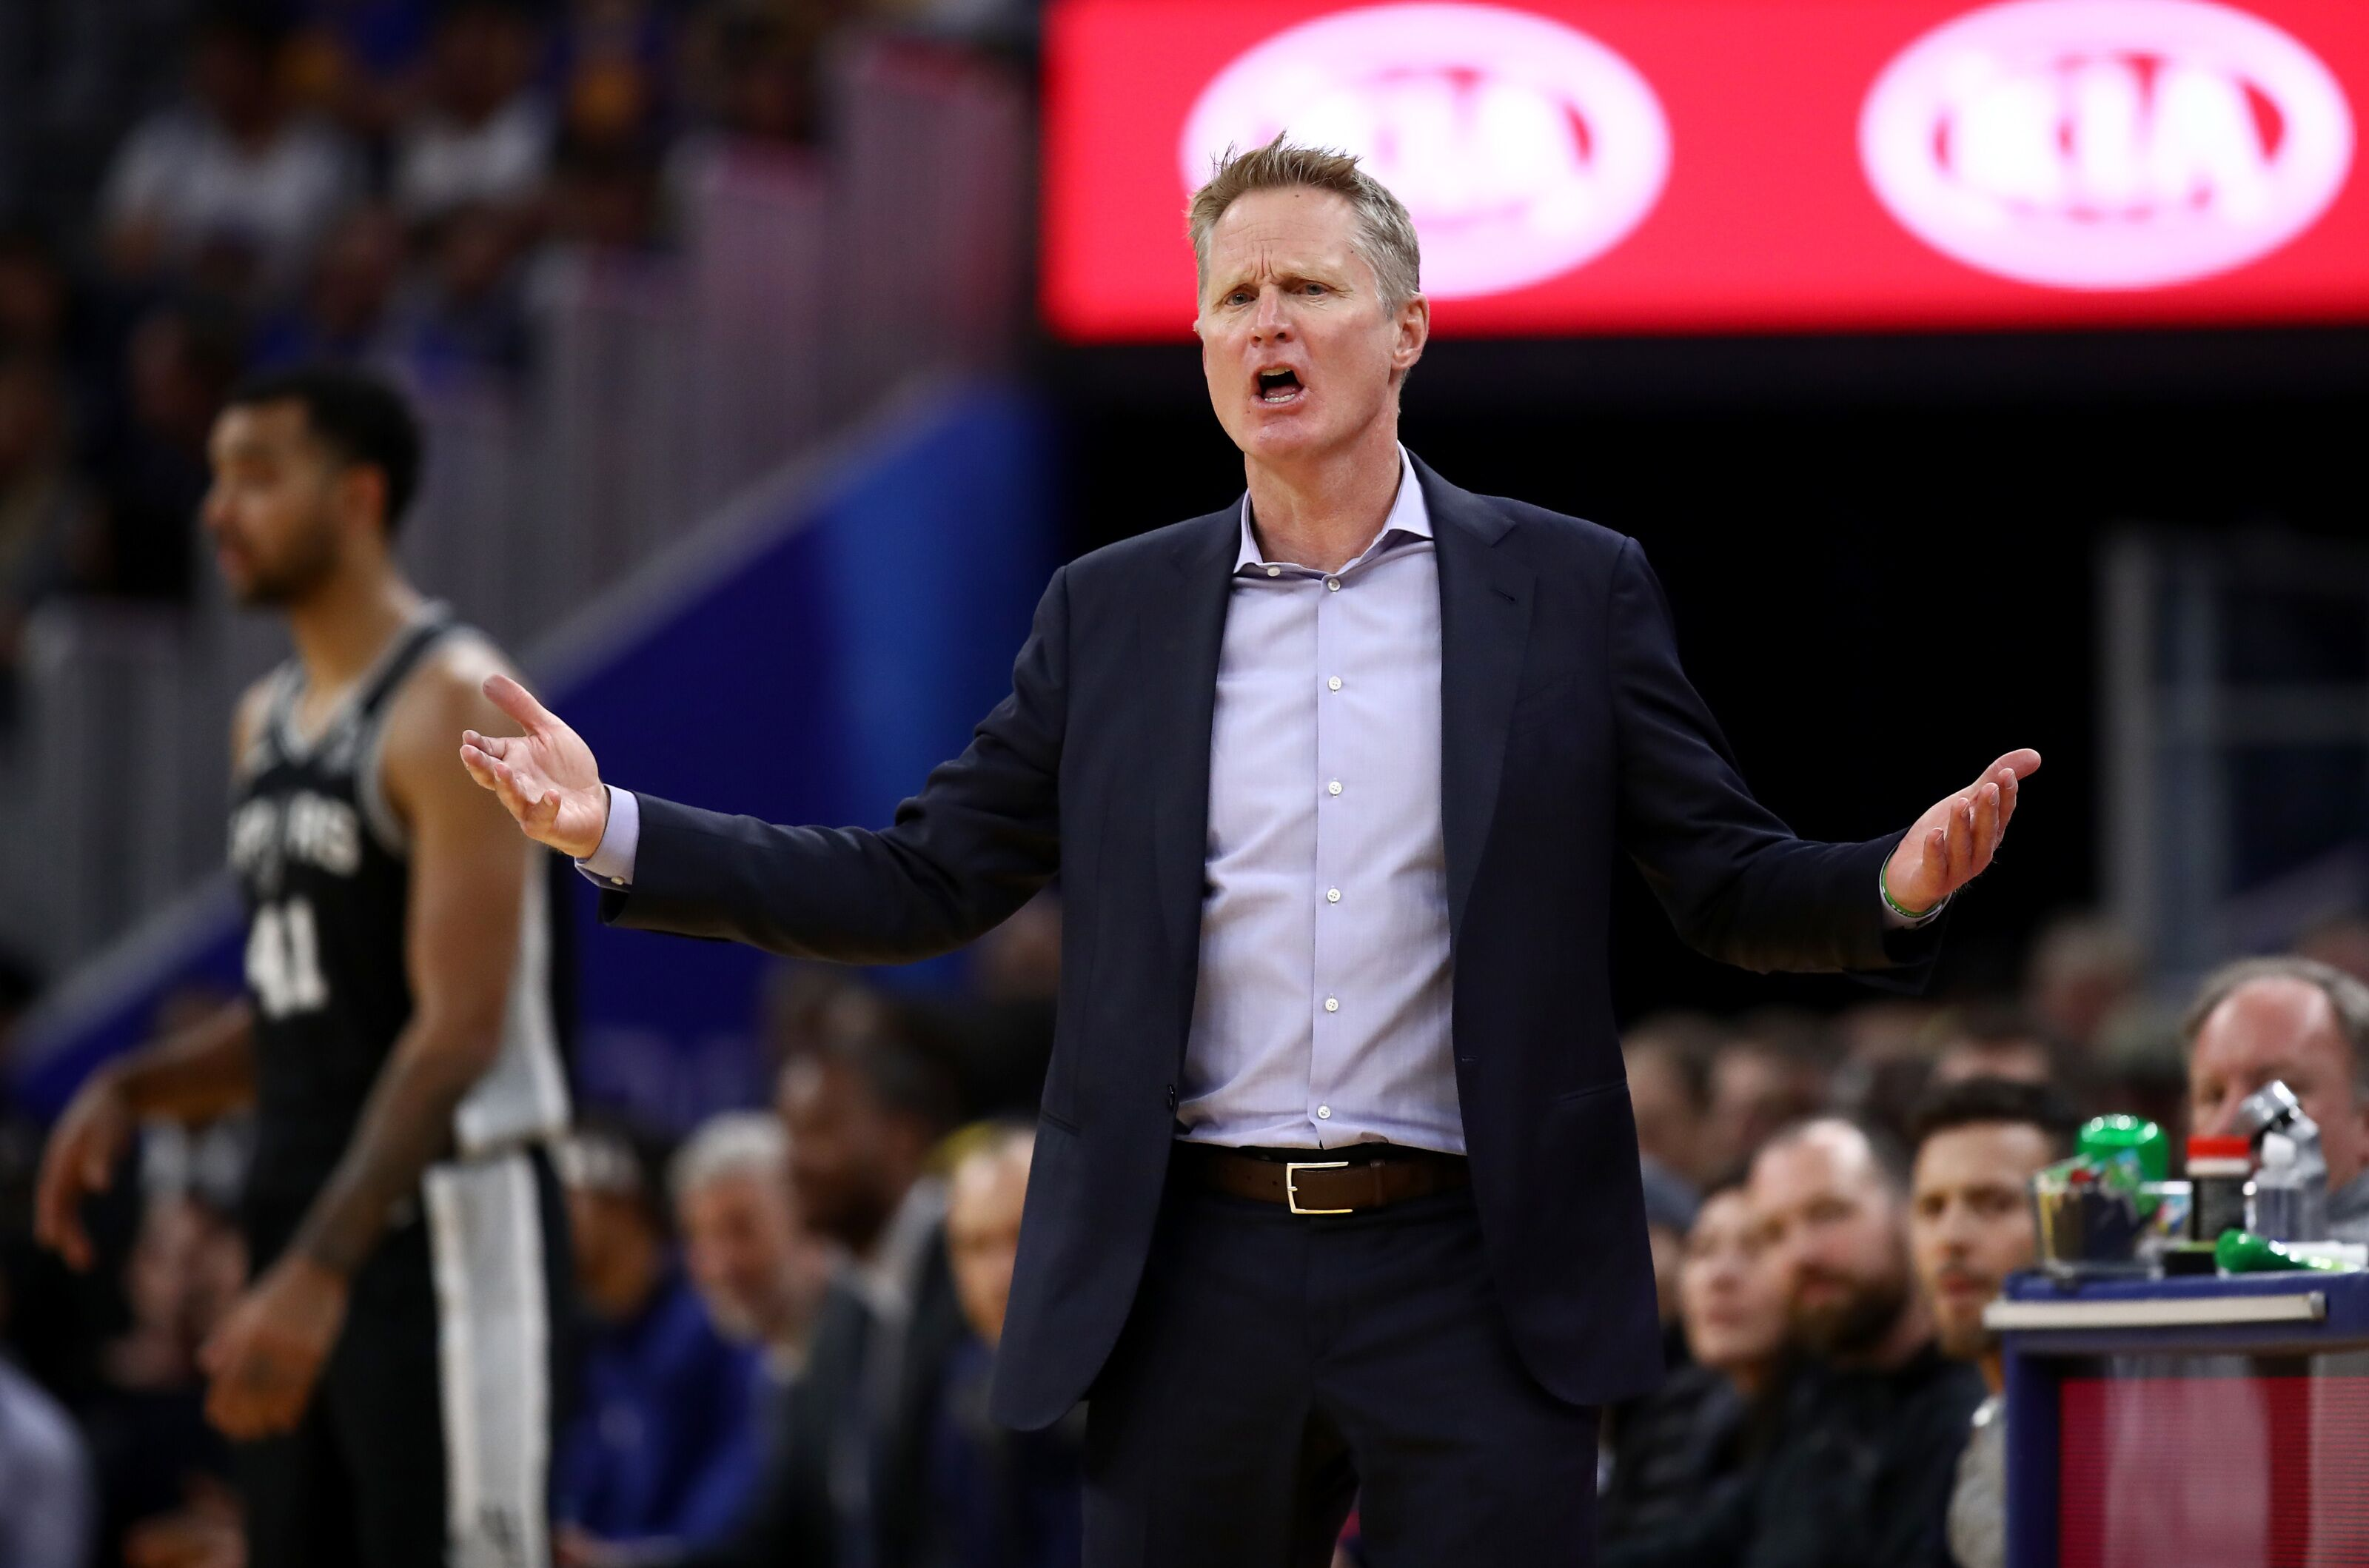 The Golden State Warriors are having a historically bad season